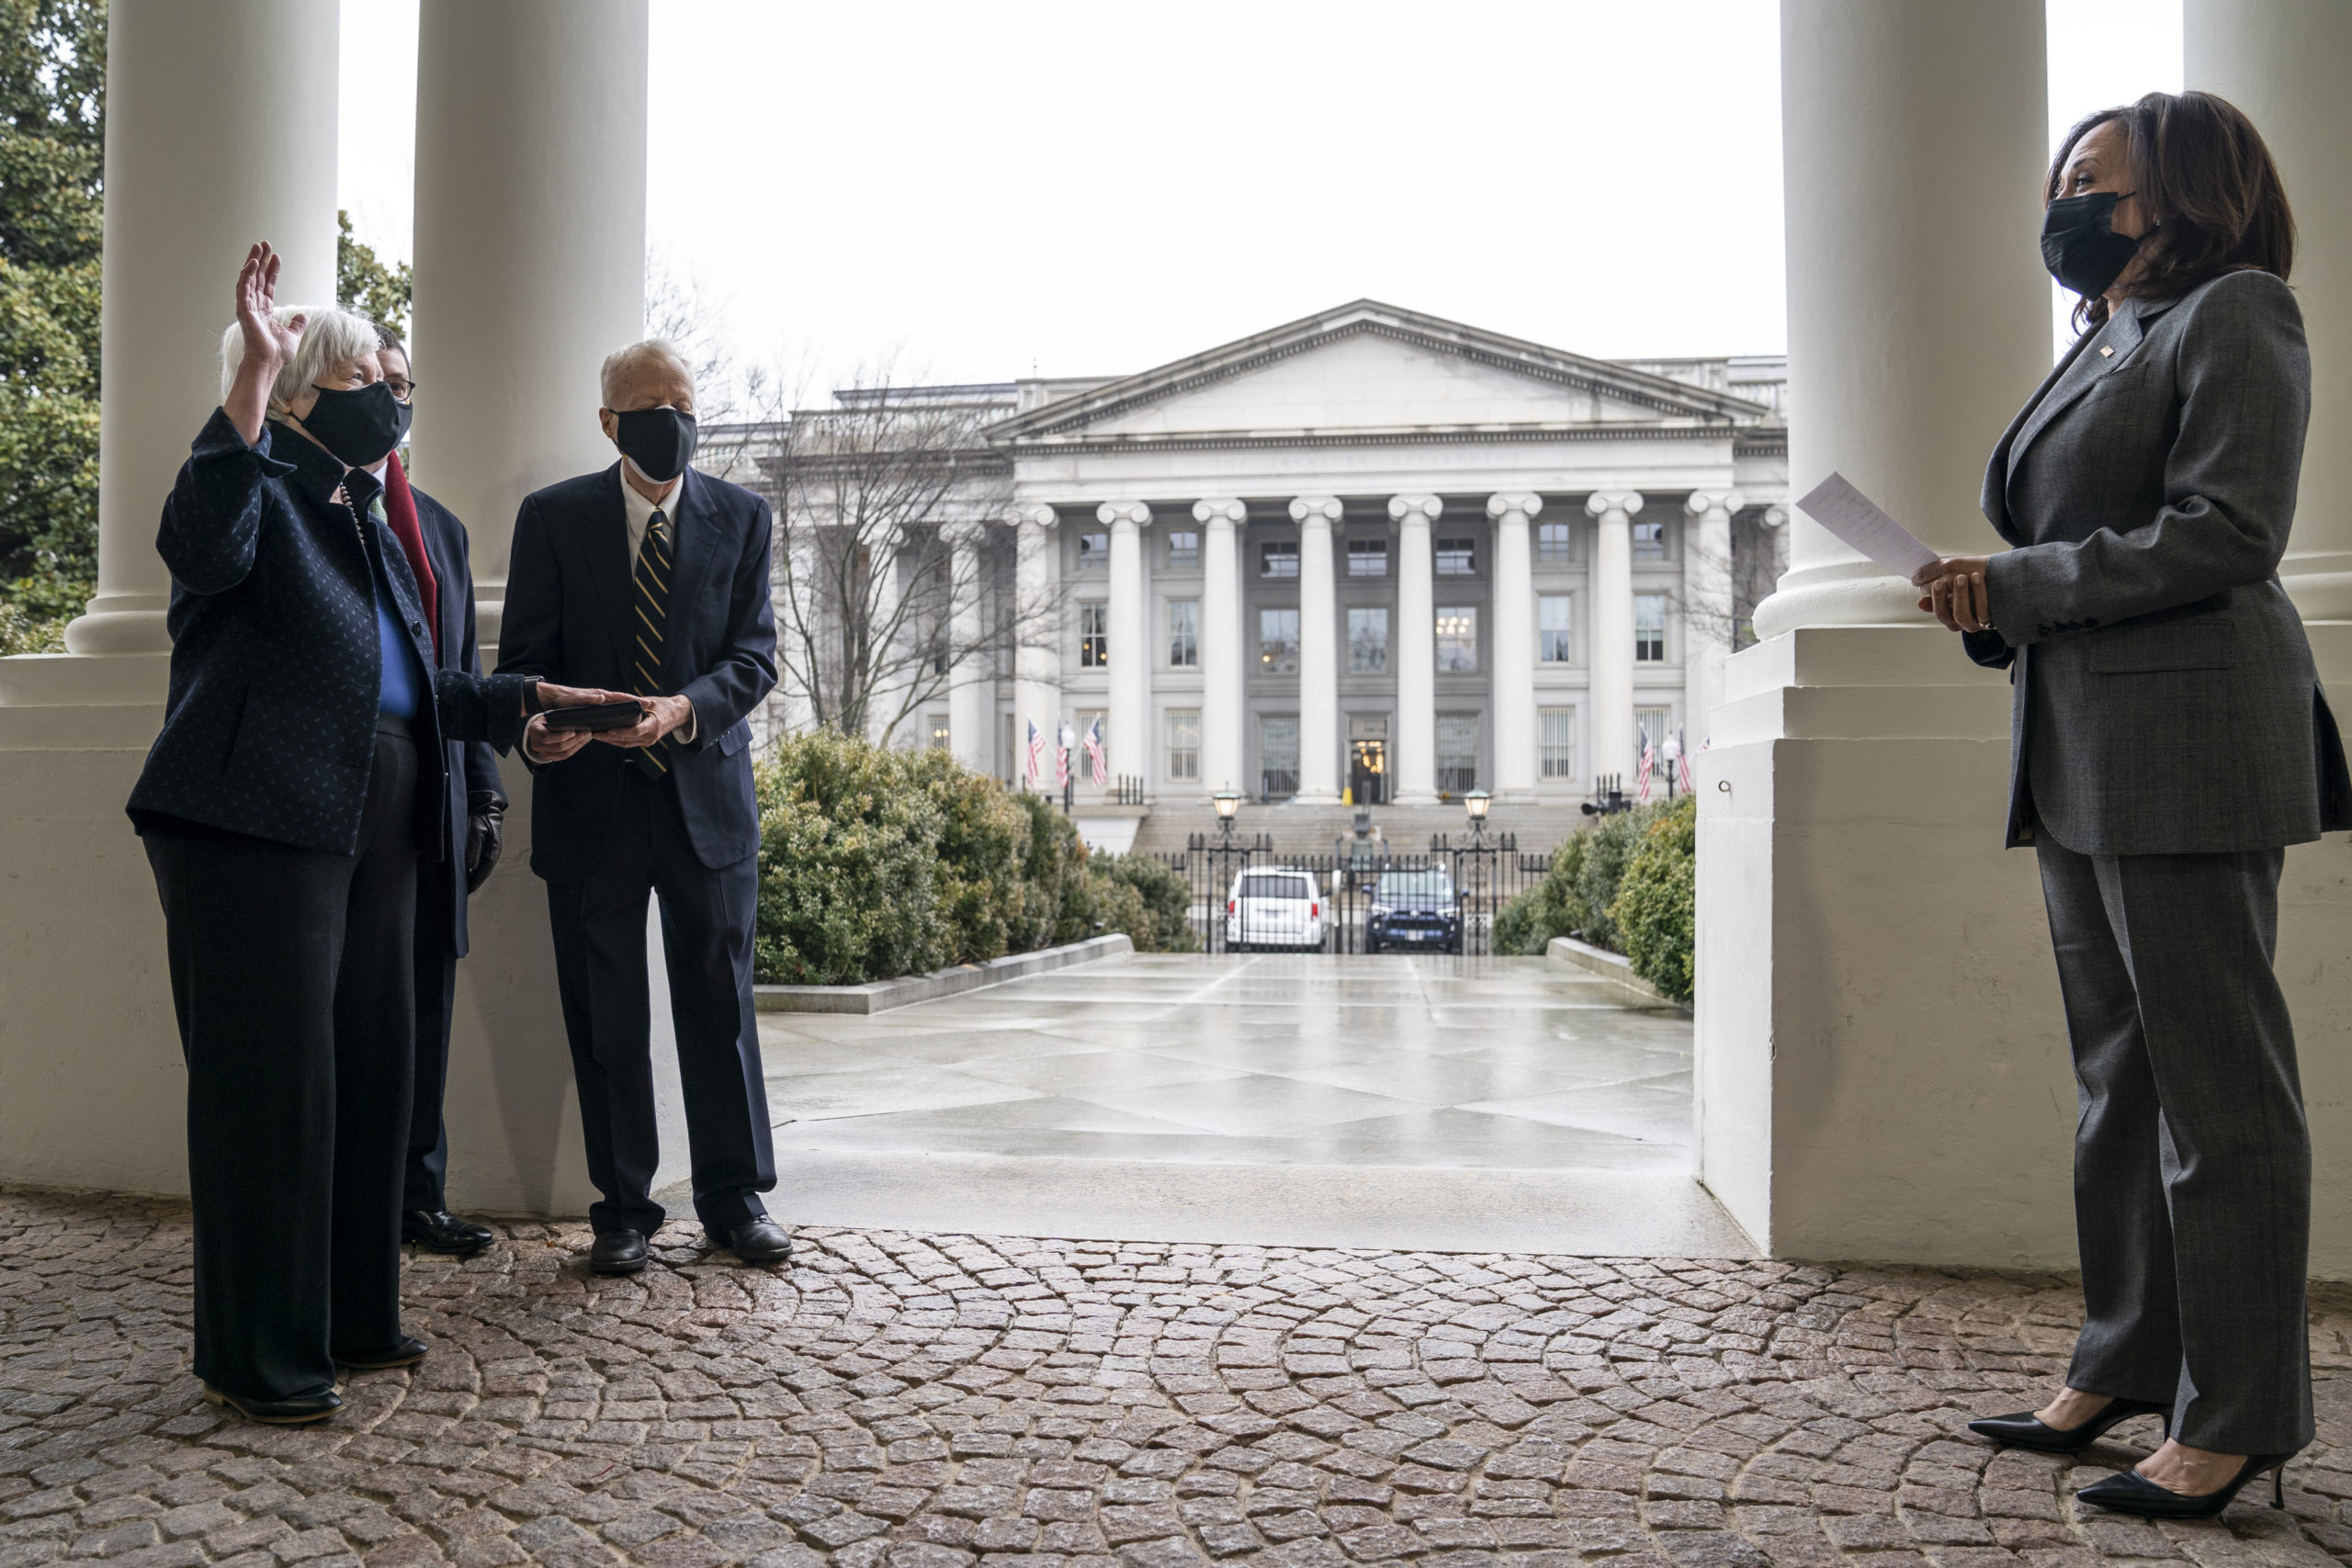 With the Treasury building behind them, Vice President Kamala Harris participates in a ceremonial swearing-in of new Treasury Sec. Janet Yellen on Monday in Washington, D.C. (Drew Angerer/Getty Images)